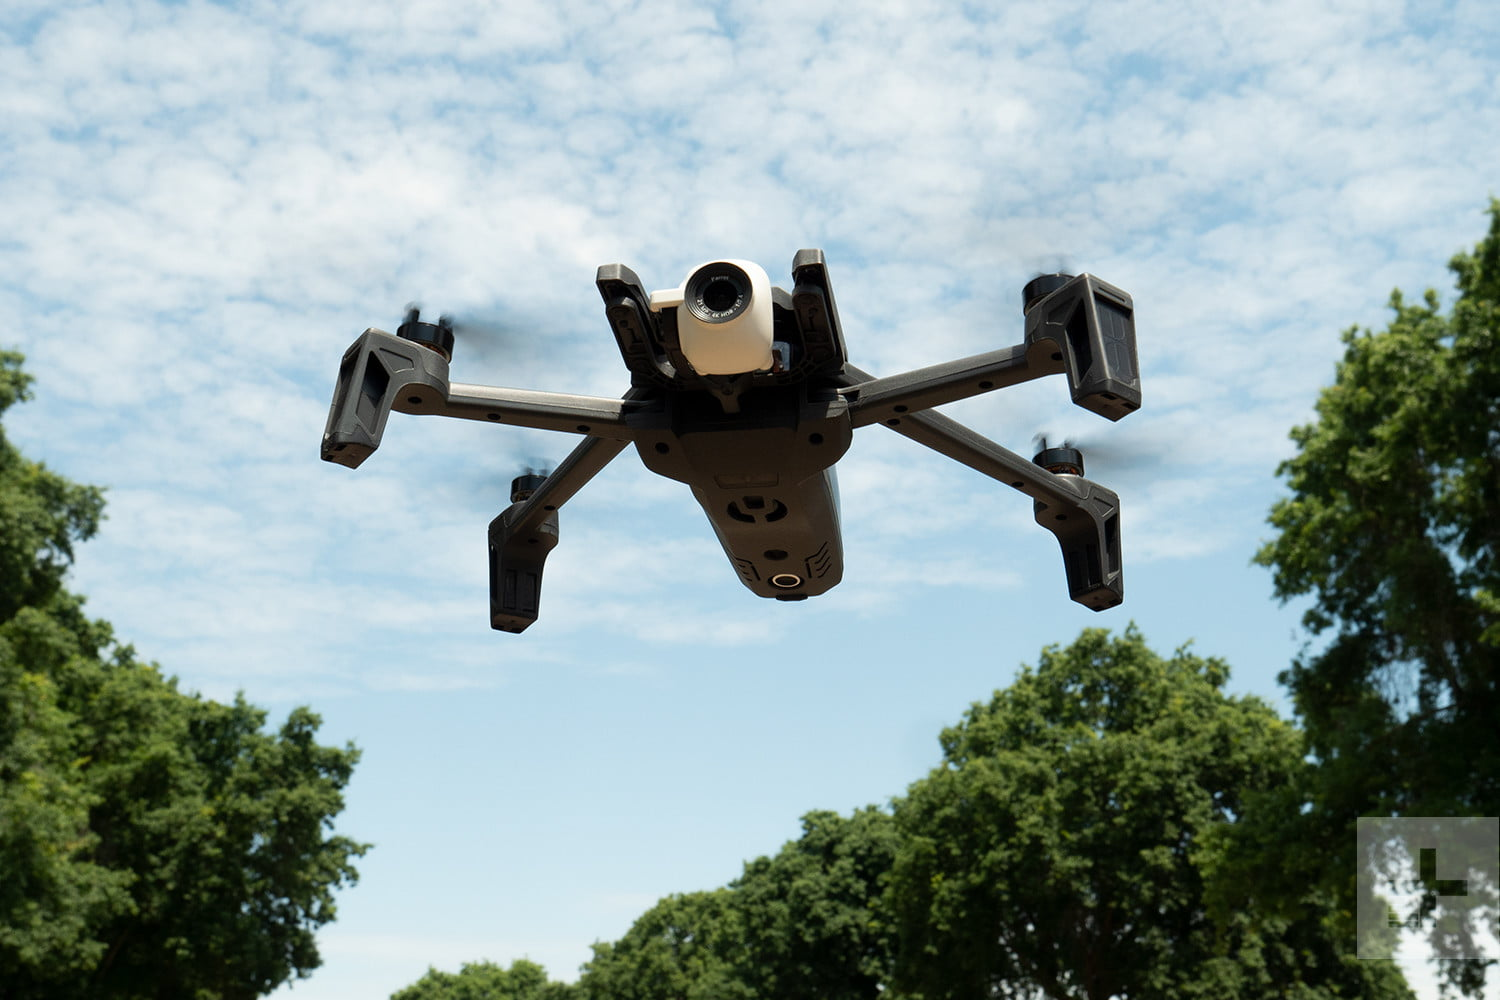 Parrot to build small surveillance drones for U.S. soldiers on the battlefield